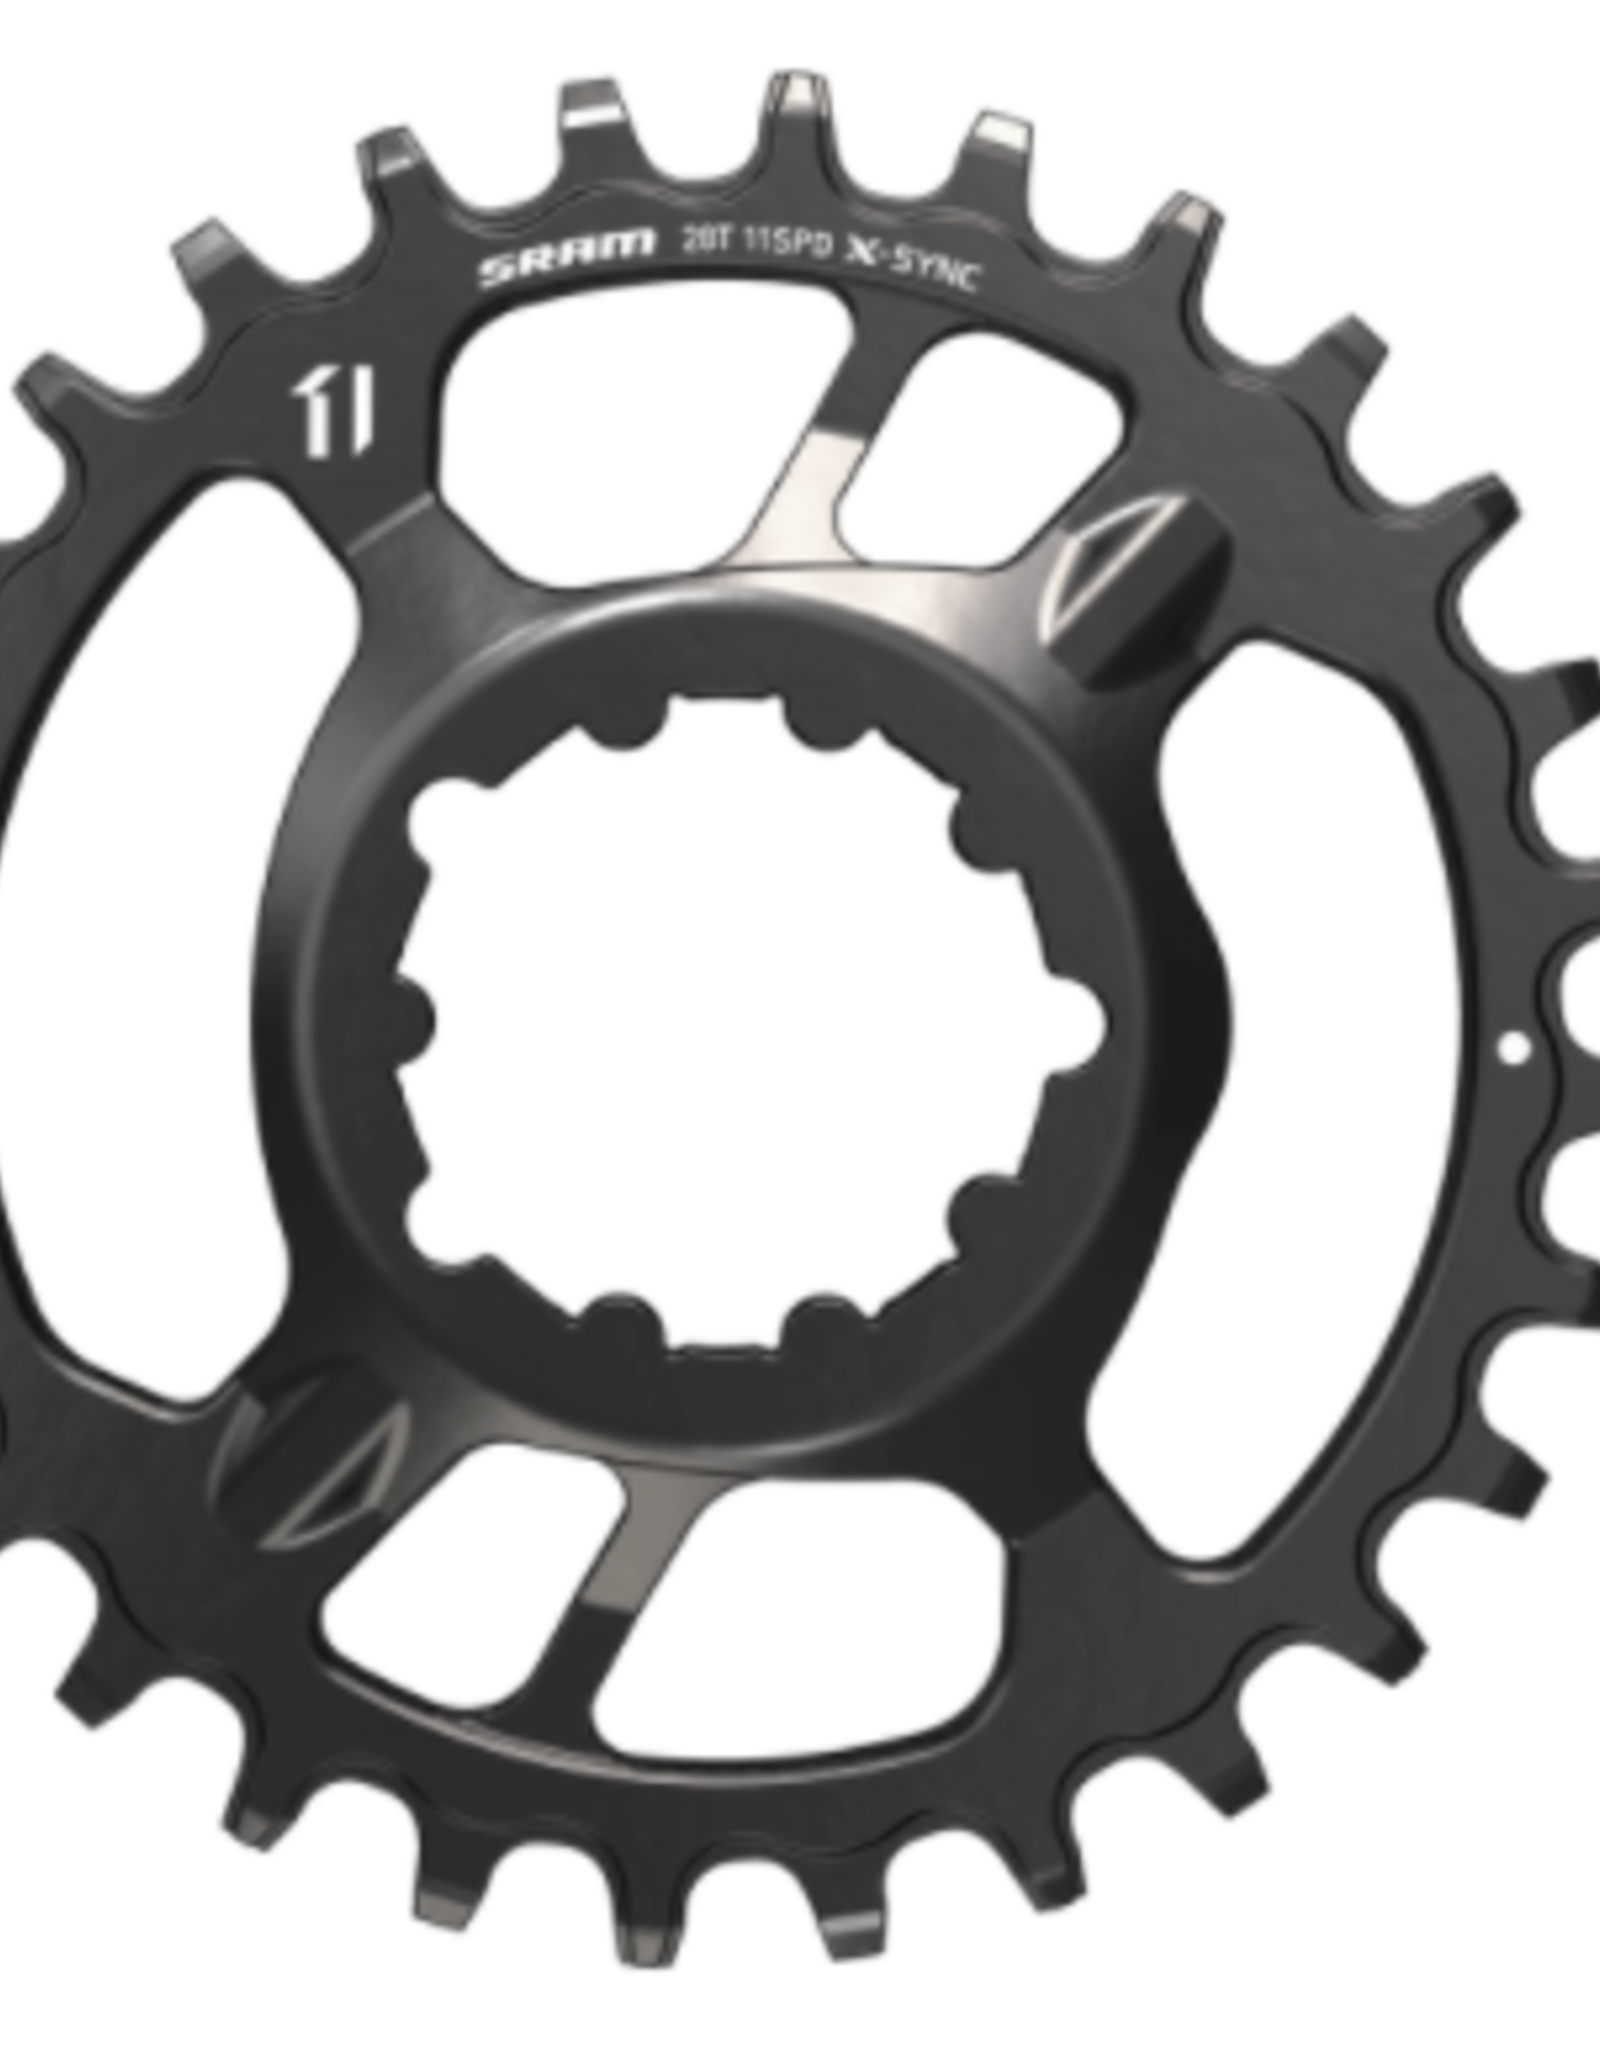 srAM SRAM chain ring X-sync 2 steel direct mount 3mm offset boost eagle 30t